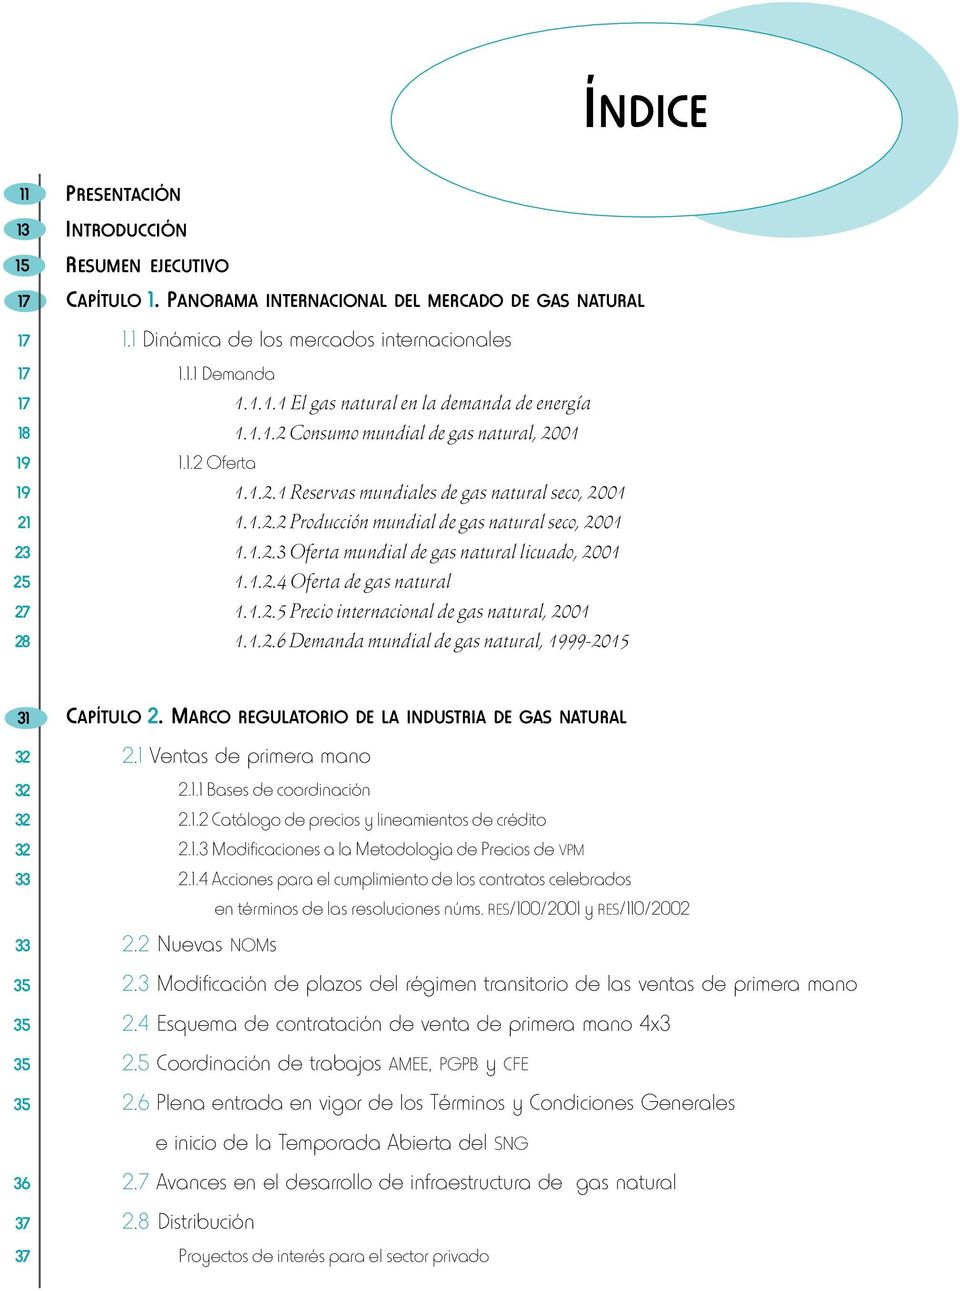 Prospectiva del mercado de gas natural - PDF